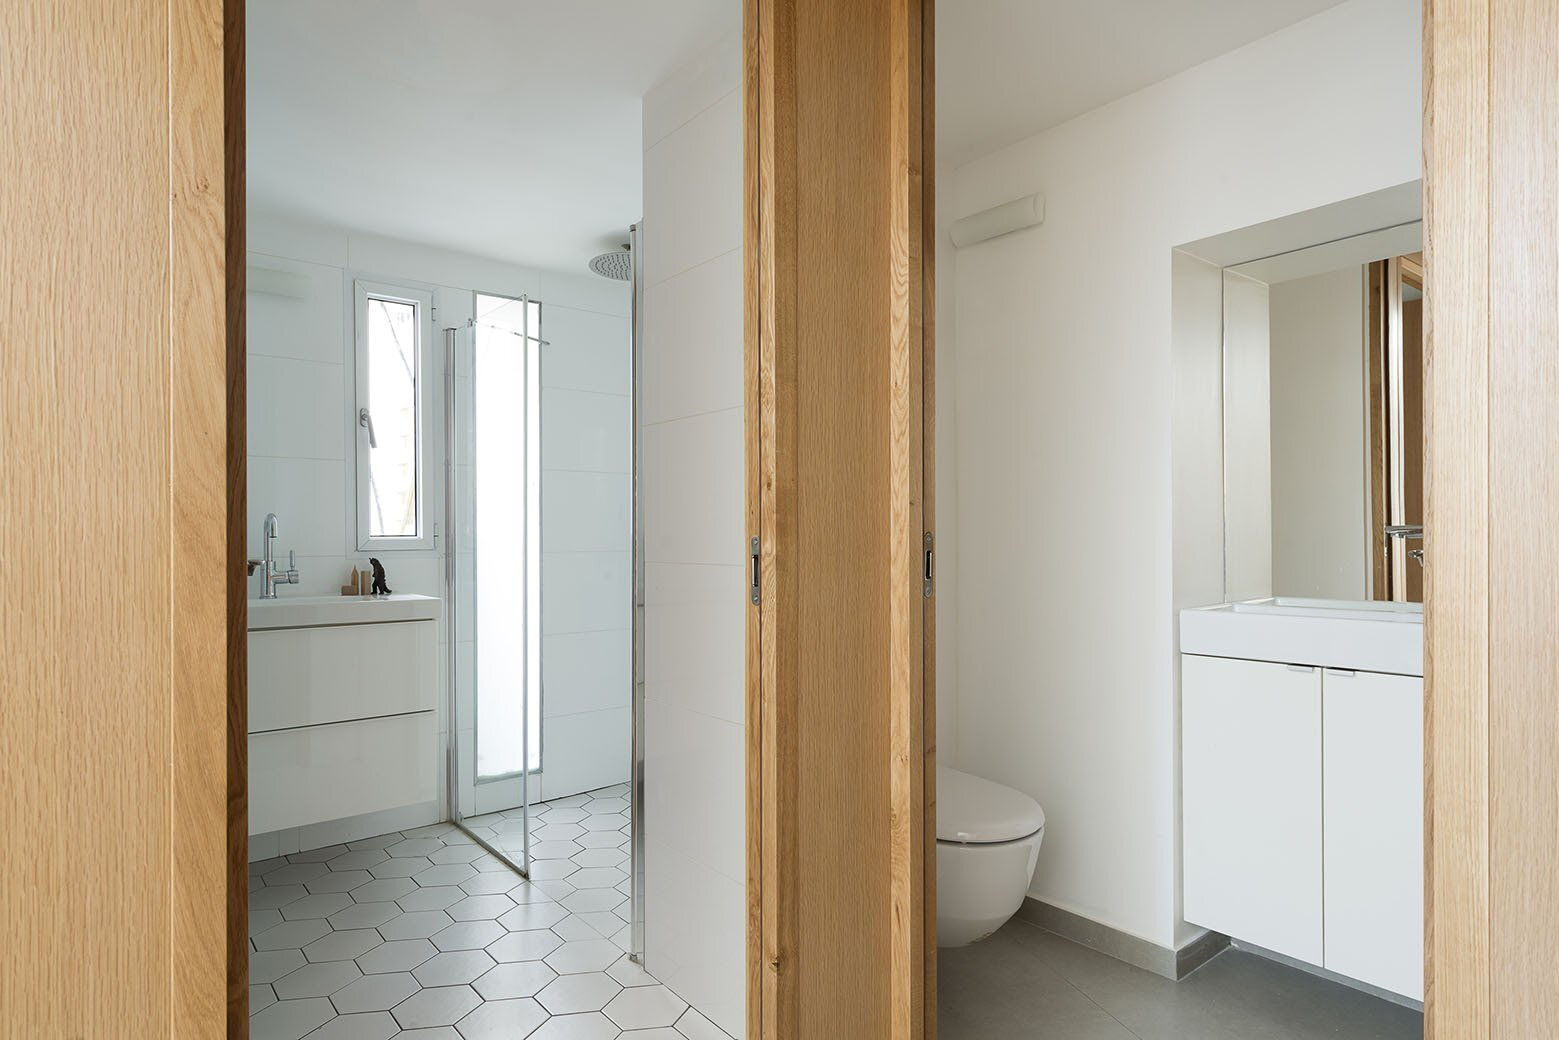 Jaffa Garden Apartment - Itai Palti - Tel Aviv - Bathroom - Humble Homes